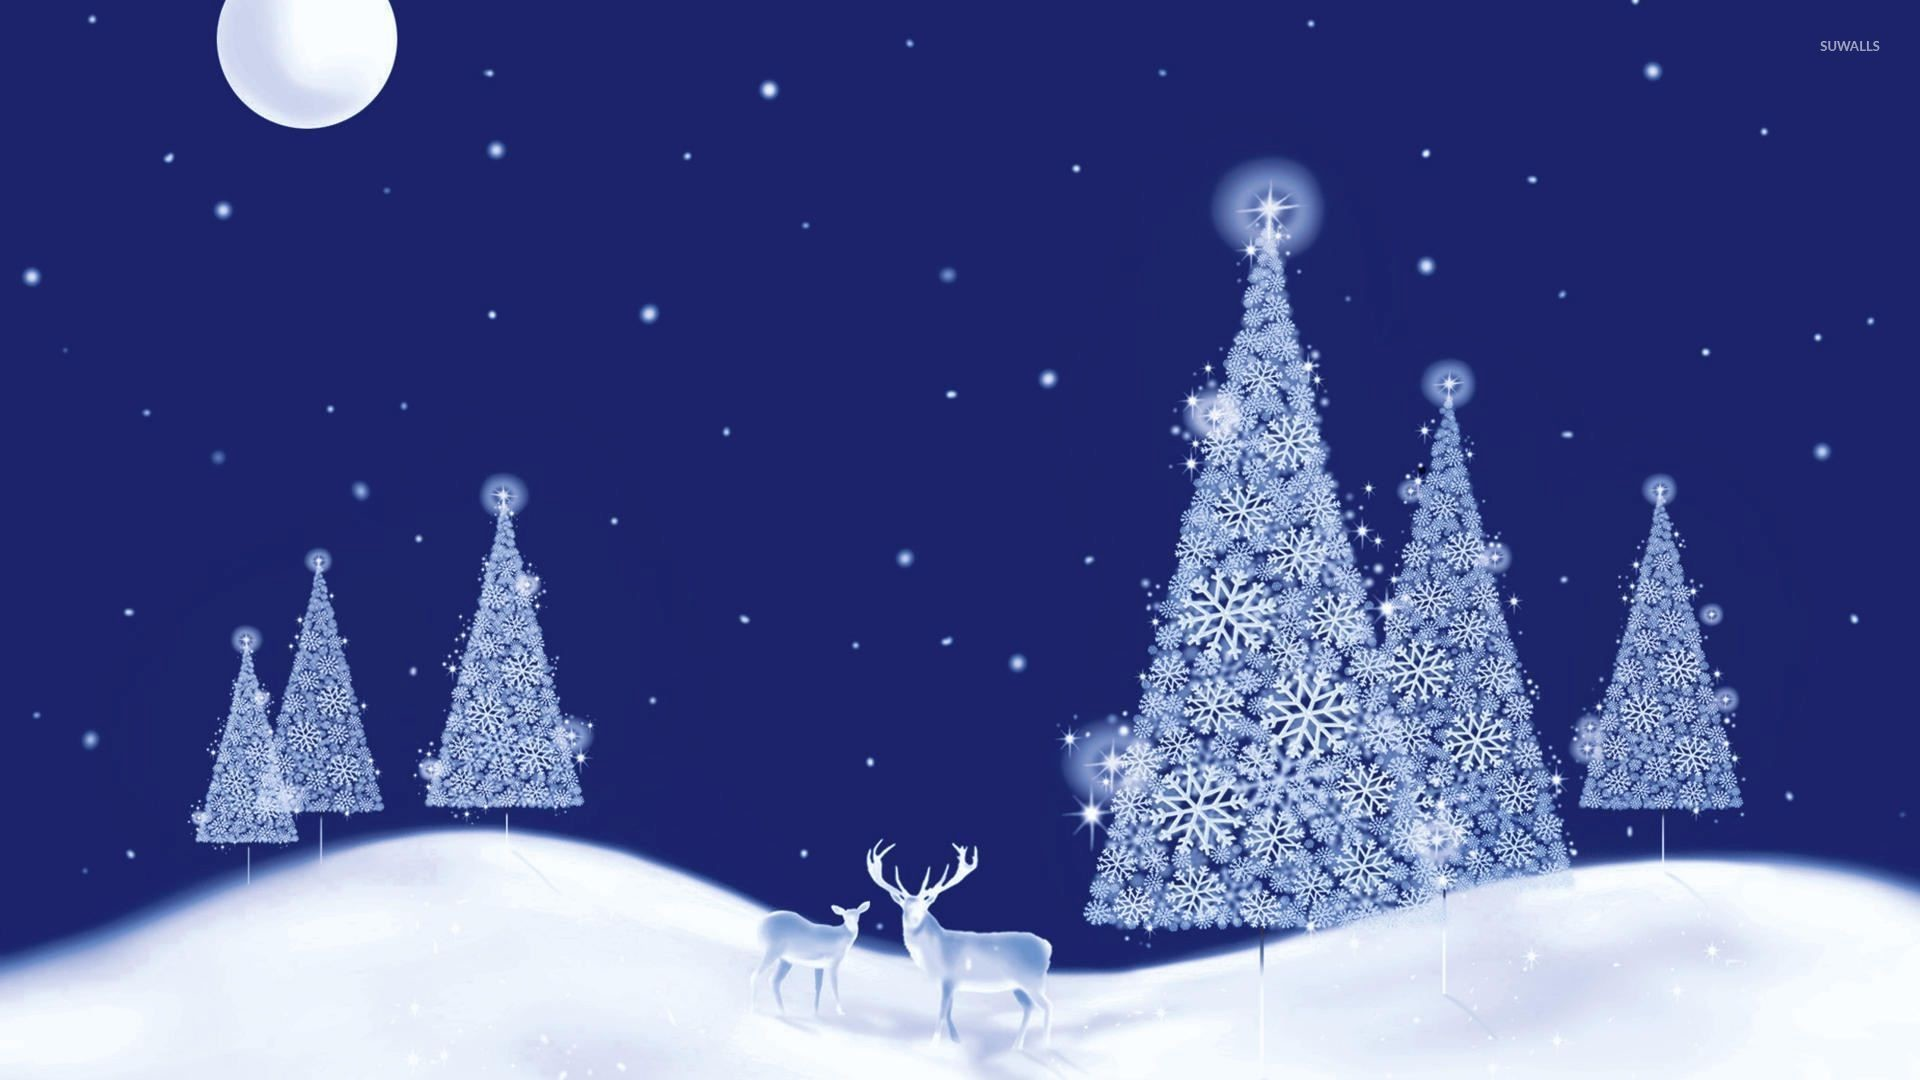 Christmas In Europe Wallpaper.Winter And Christmas Wallpapers 69 Background Pictures